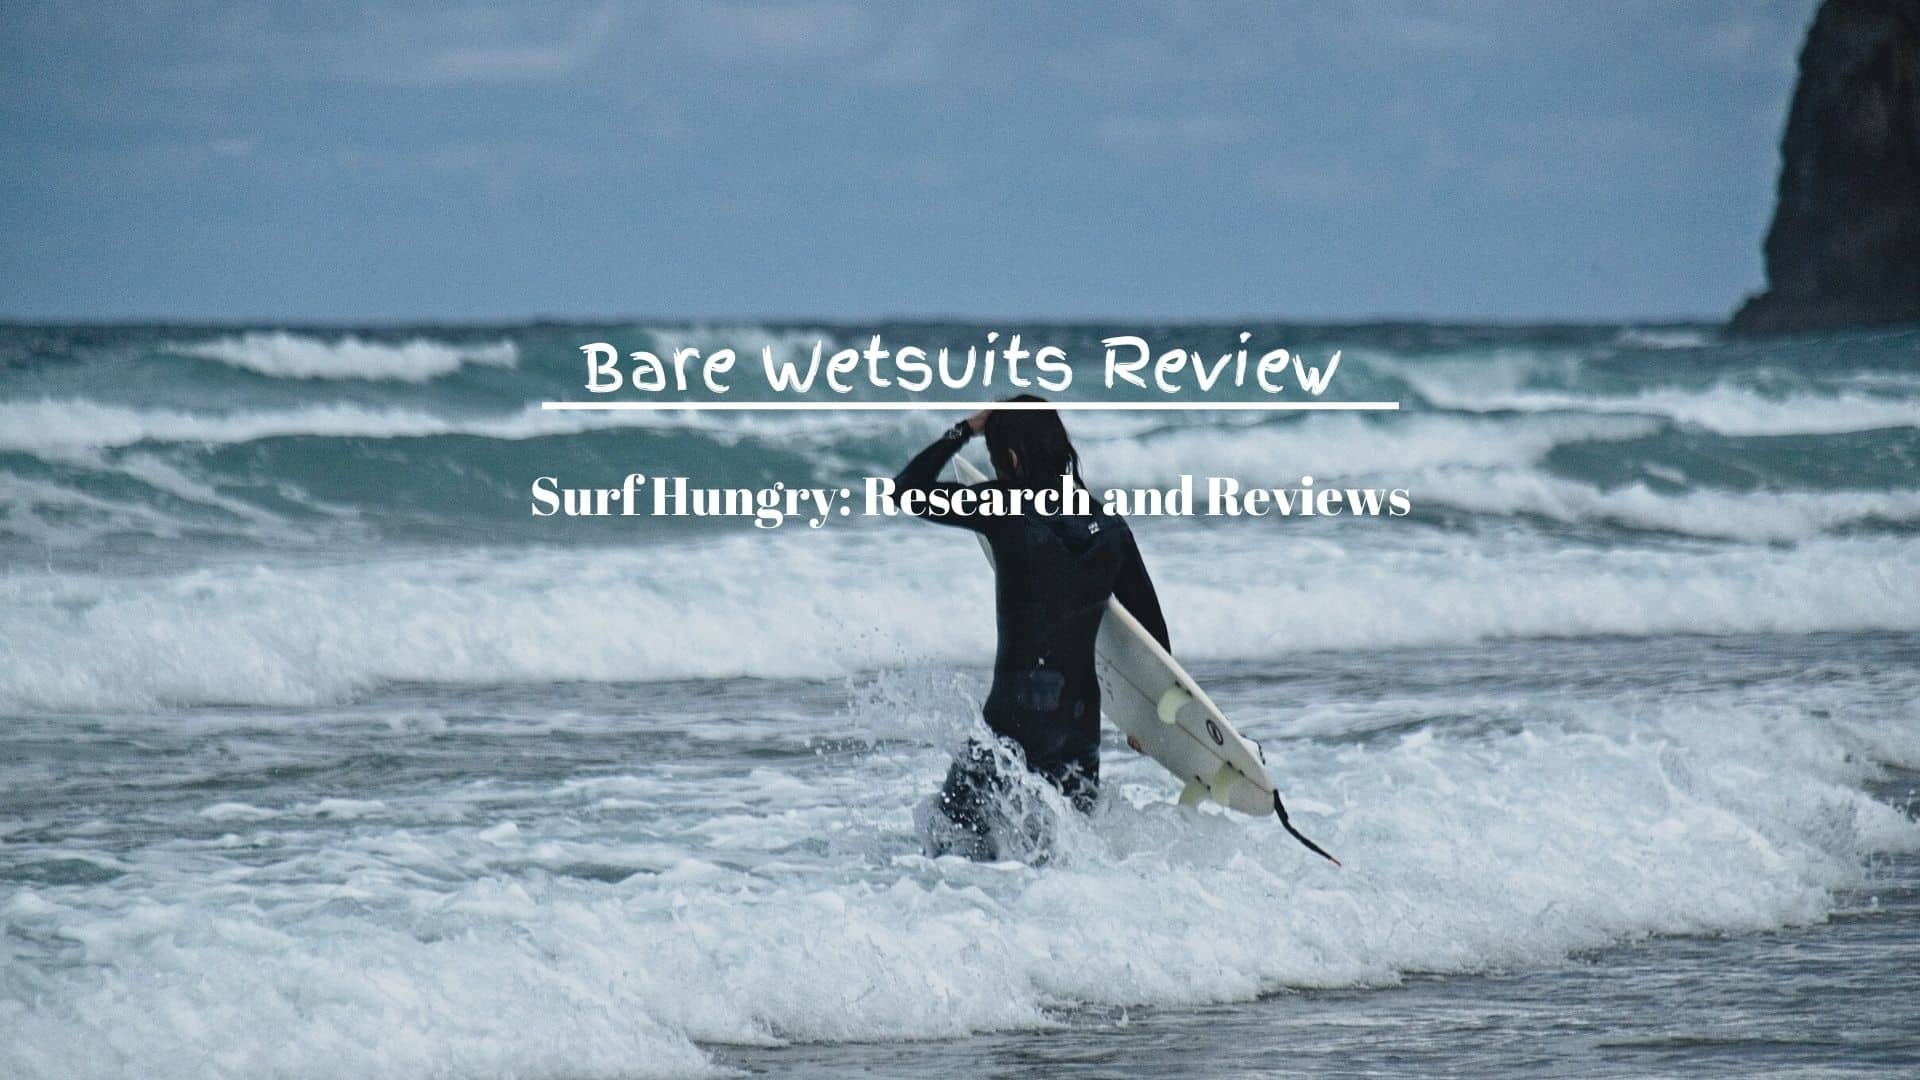 bare wetsuits review